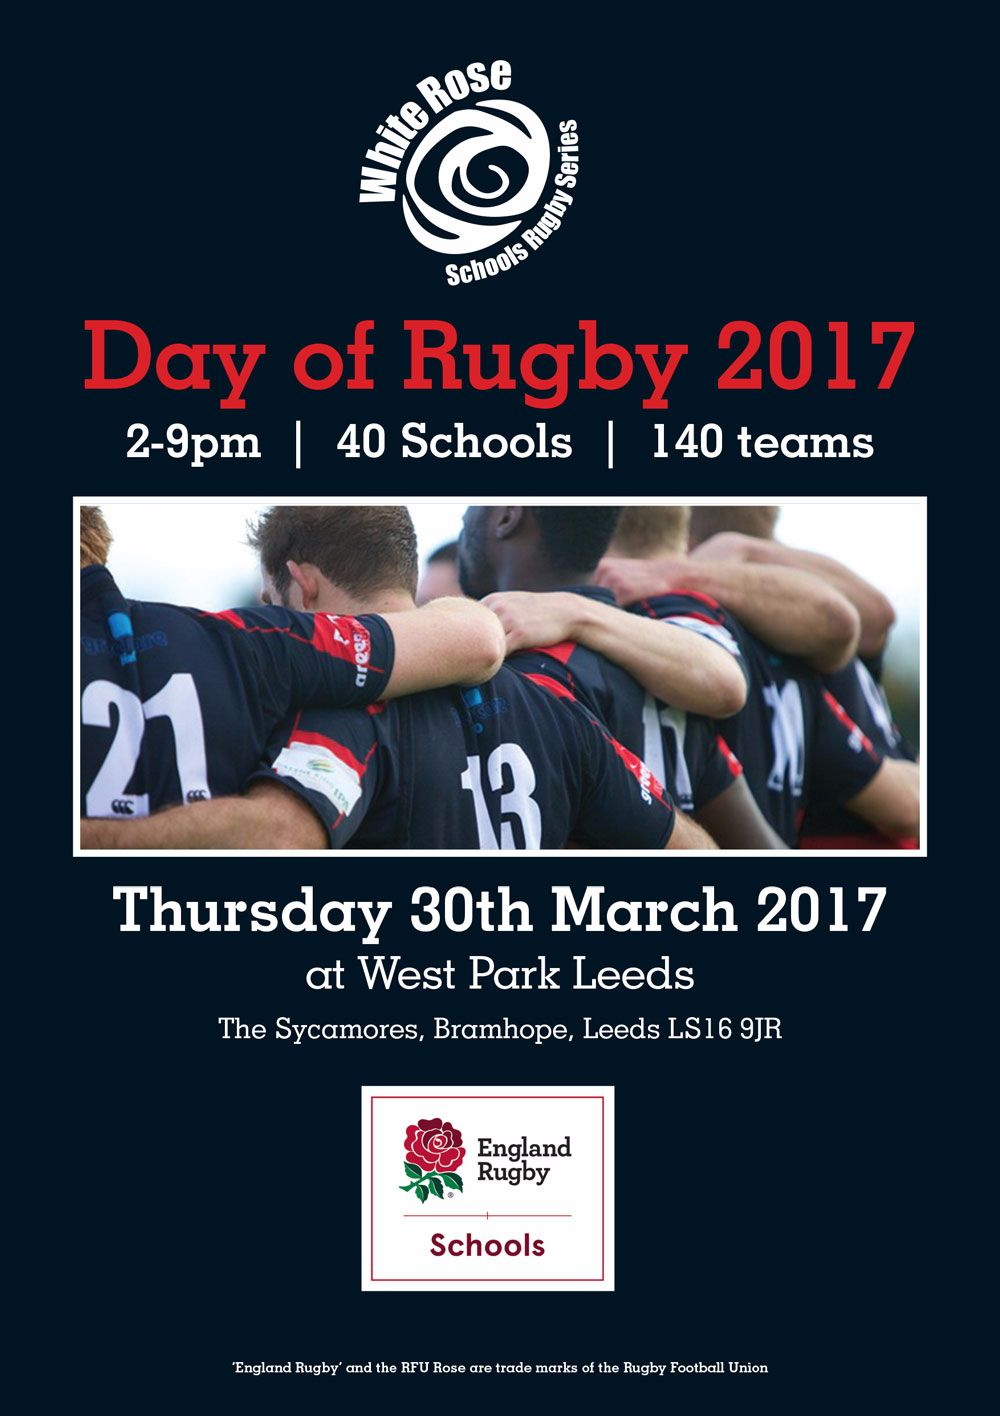 Luscombe Mitsubishi Leeds Supporting Day of Rugby 2017